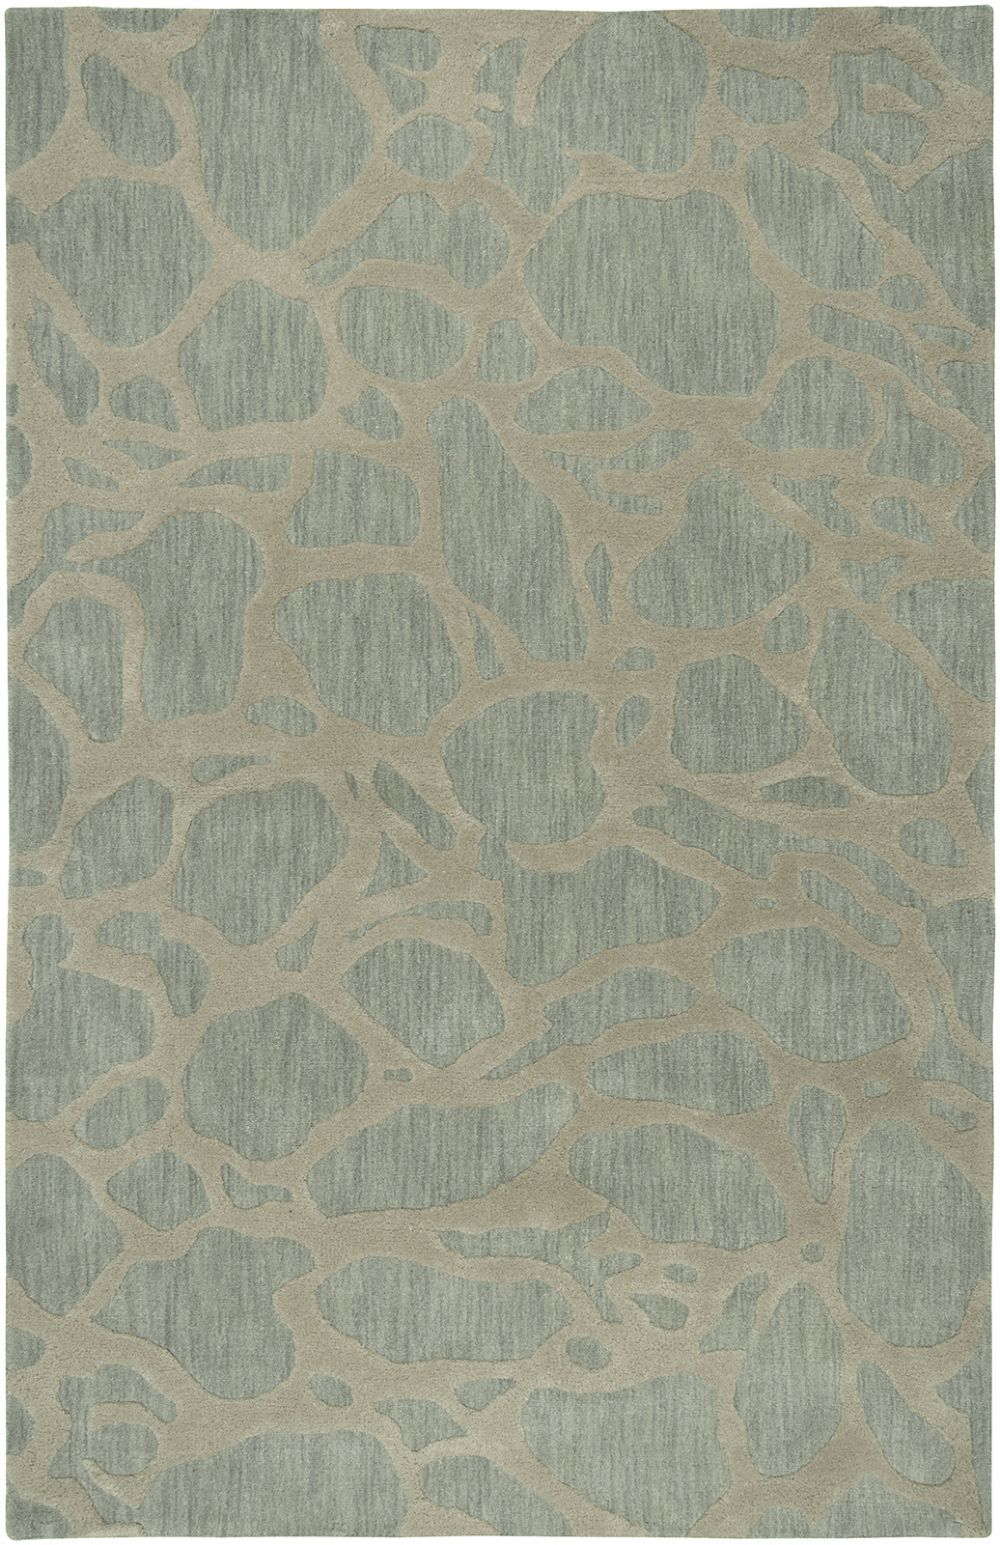 lr resources landscape contemporary area rug collection